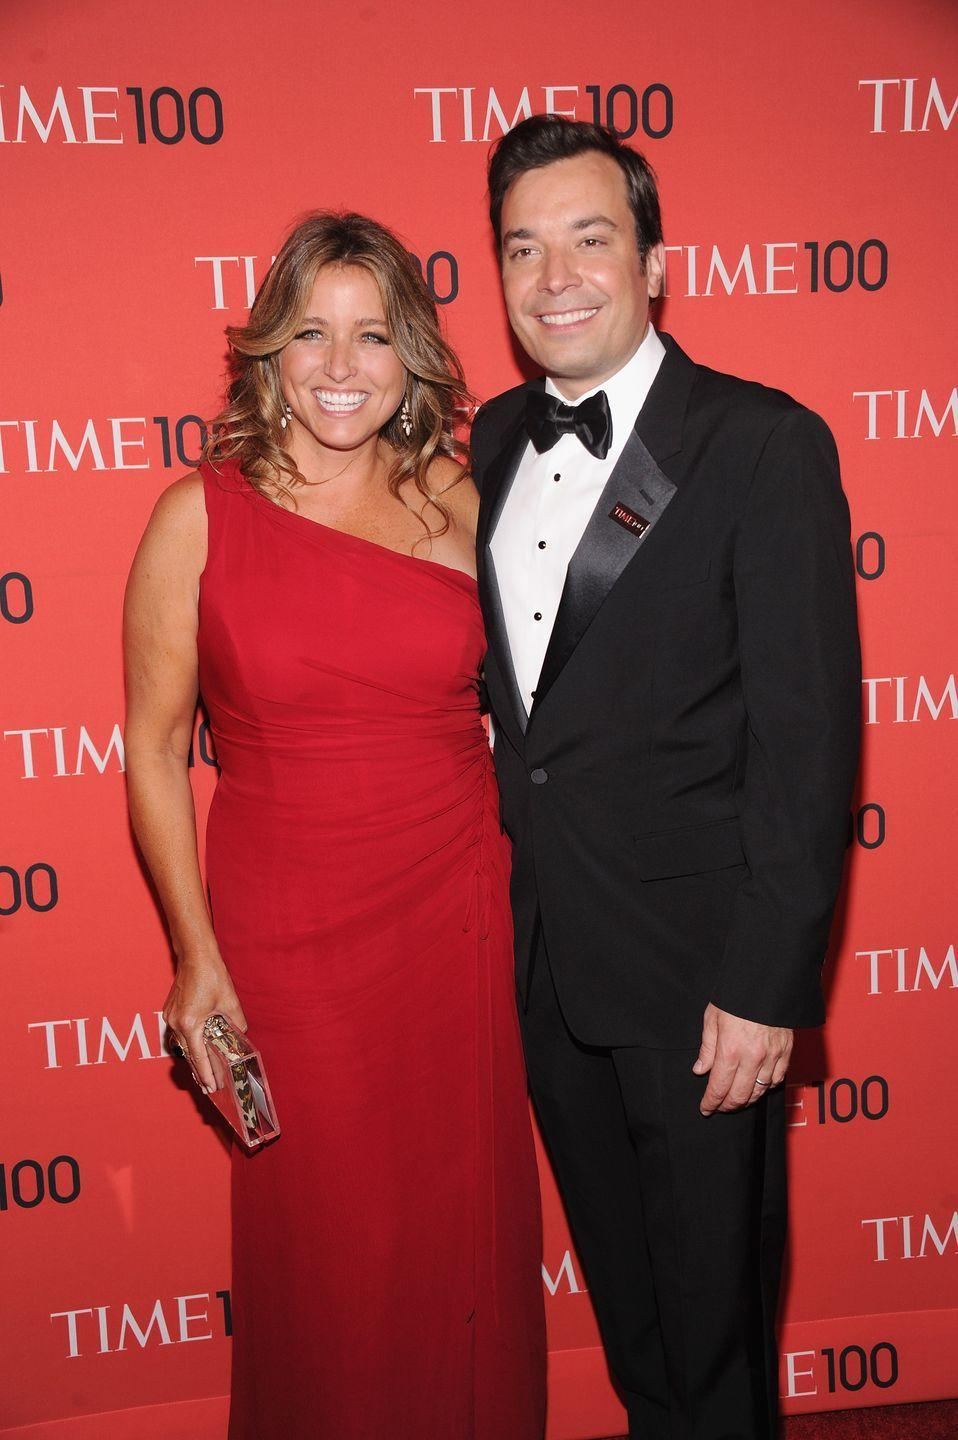 <p>Jimmy Fallon married Nancy Juvonen, a film producer and co-founder of Drew Barrymore's Flower Films, in 2007. The couple shares two daughters.</p>